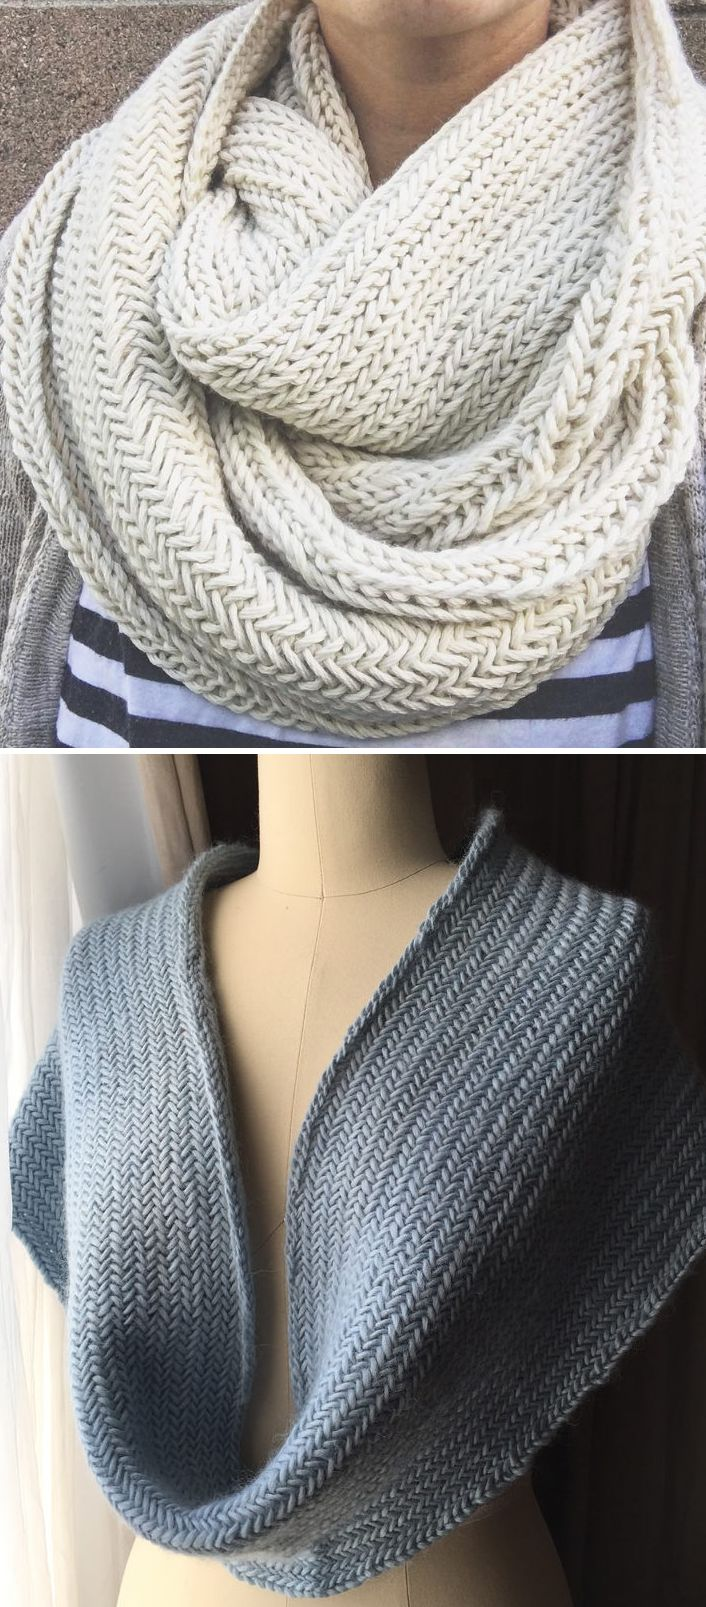 Free Knitting Pattern for 2 Row Repeat Big Herringbone Cowl - This circle scarf is knit in the round with a two row repeat herringbone stitch in a length designed to be wrapped and keep you cozy. Designed byPurl Soho. Pictured projects by thebonvivant and nosmallfeet